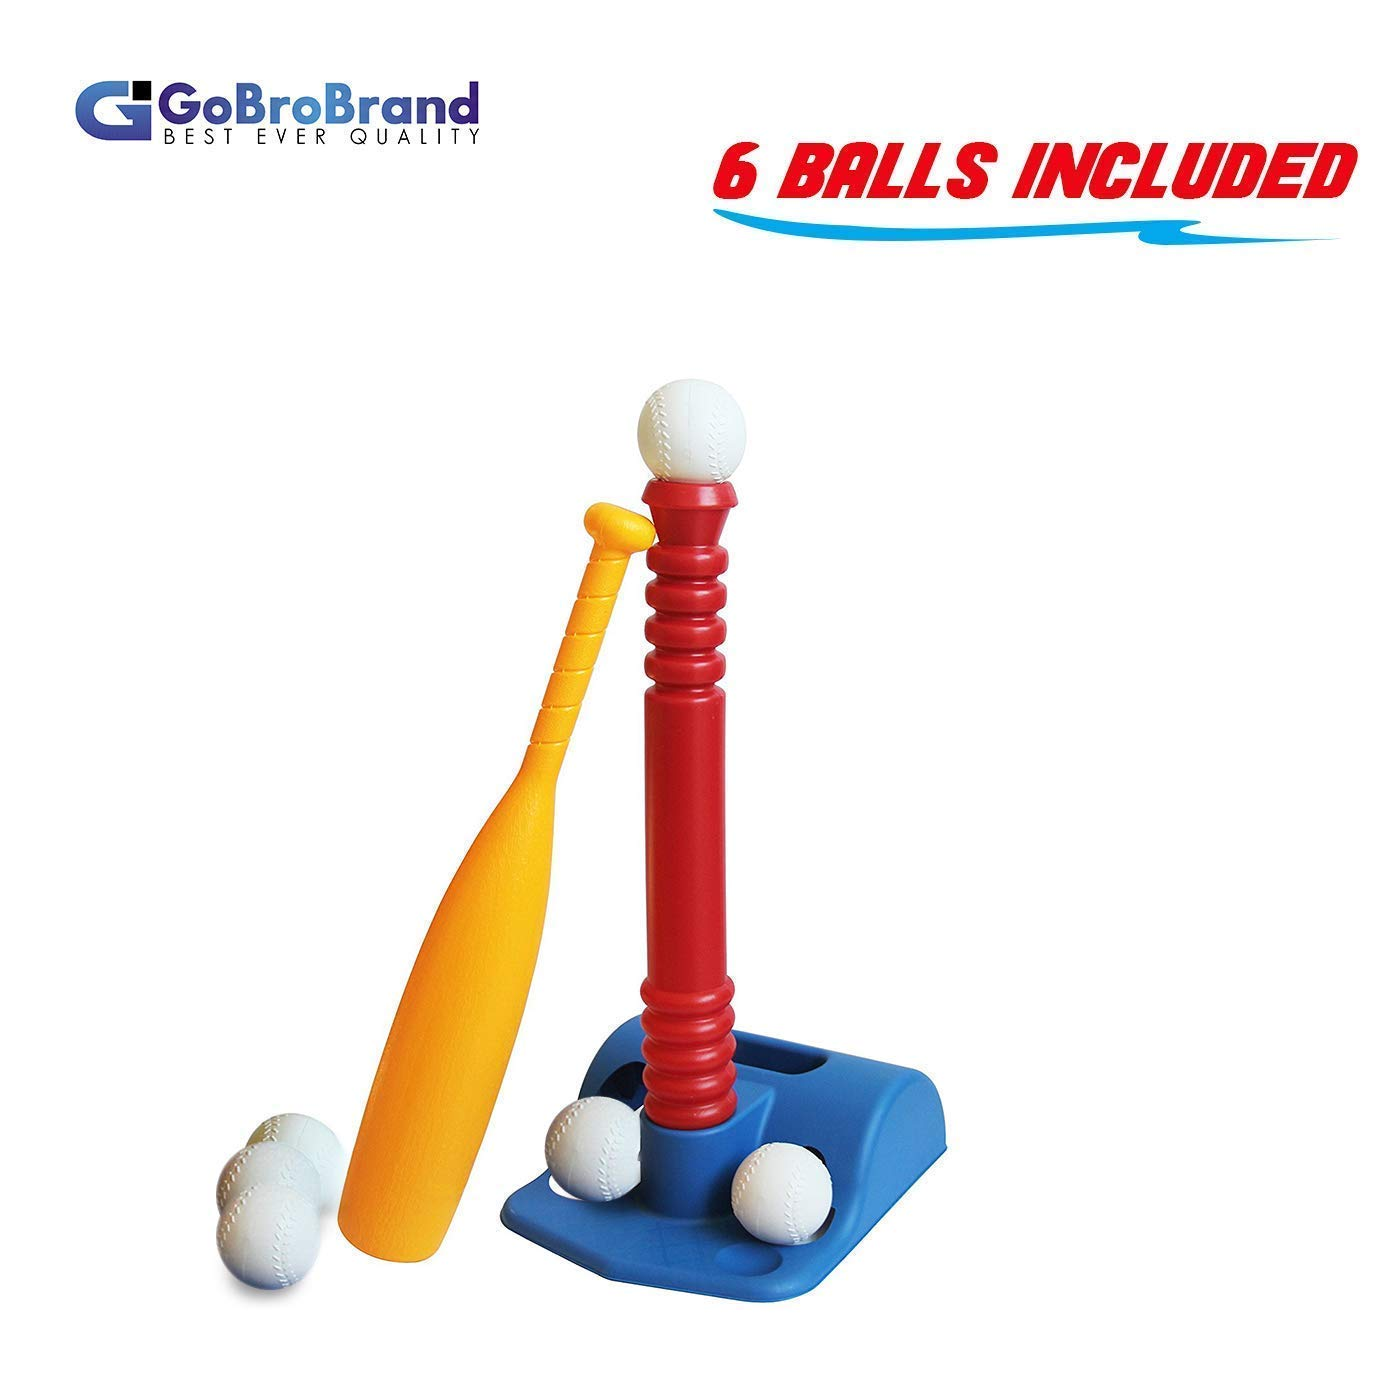 GoBroBrand T-Ball Set for Toddlers, Kids, Baseball Tee Game Includes 6 Balls, Adjustable T Height - Adapts with Your Child's Growth Spurts, Improves Batting Skills for Boys & Girls Age 2-12 Yrs Old by ToyVelt